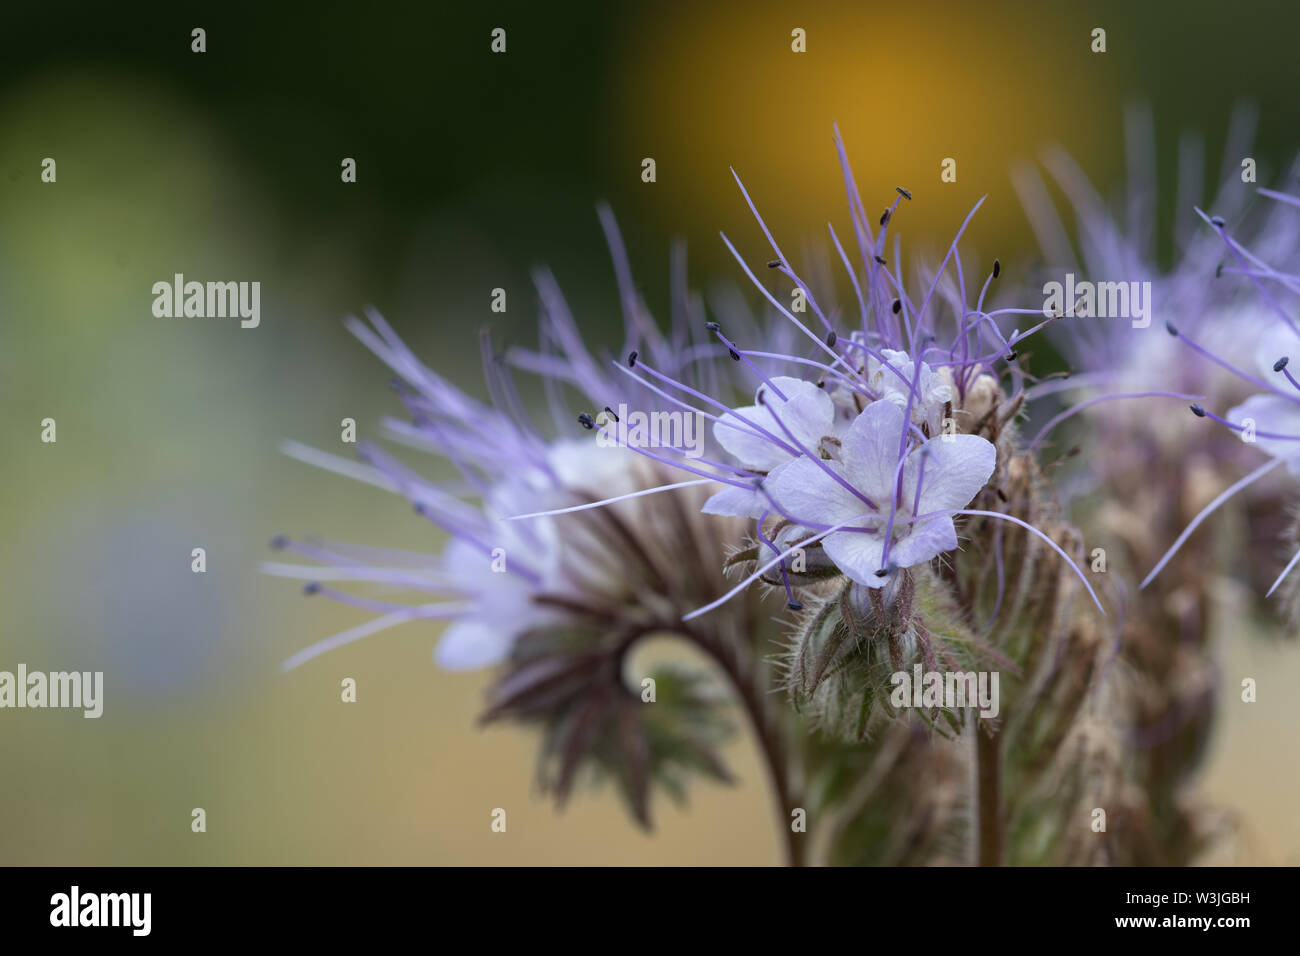 Detail from the inflorescence of a violet lacy  phacelia at the end of its blooming period. - Stock Image